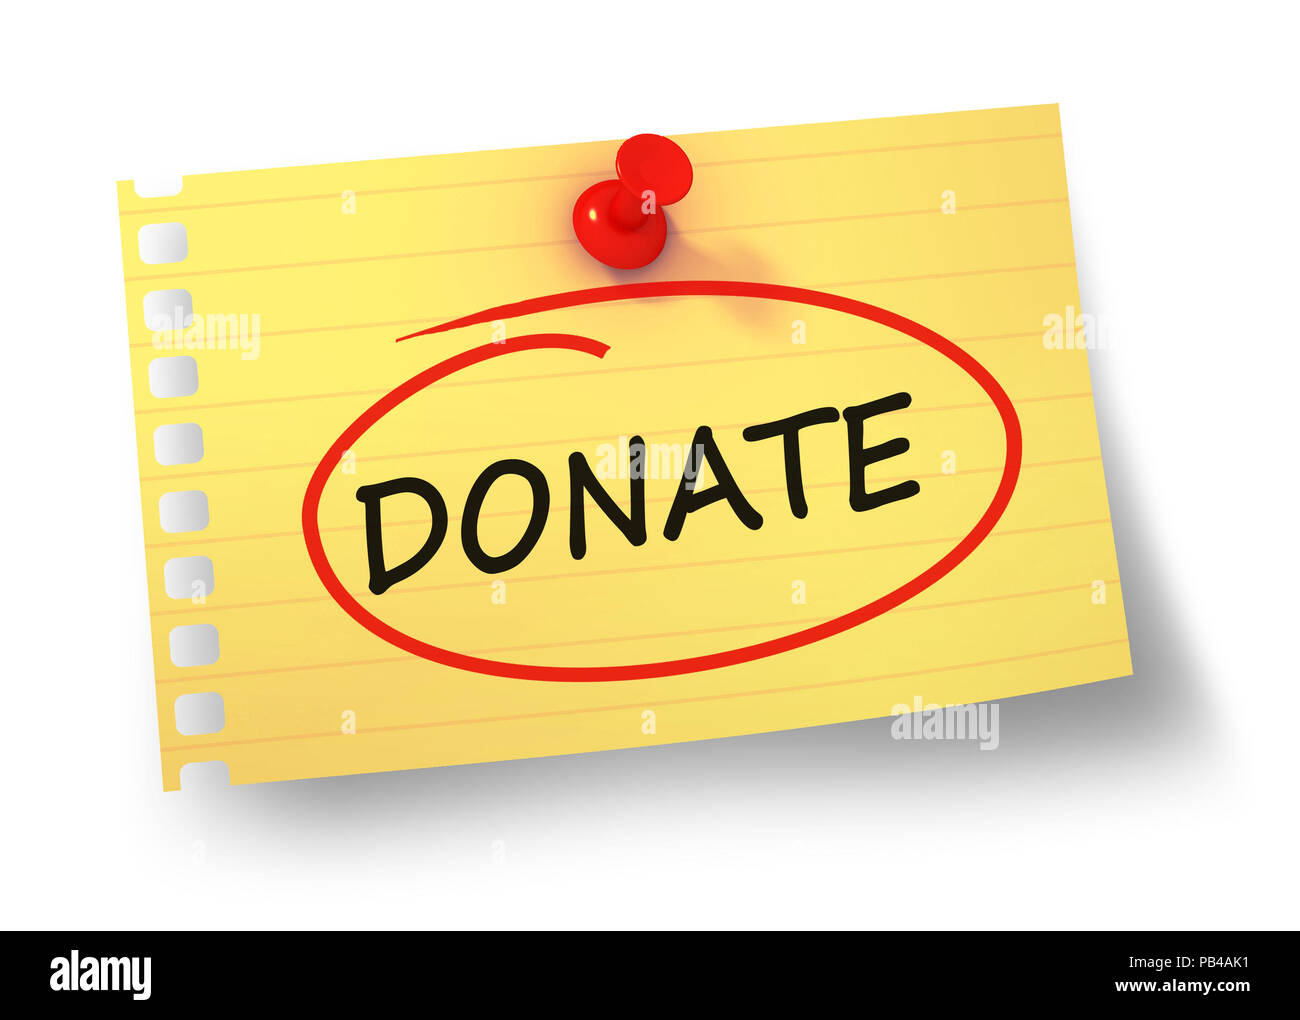 donate concept 3d illustration isolated - Stock Image